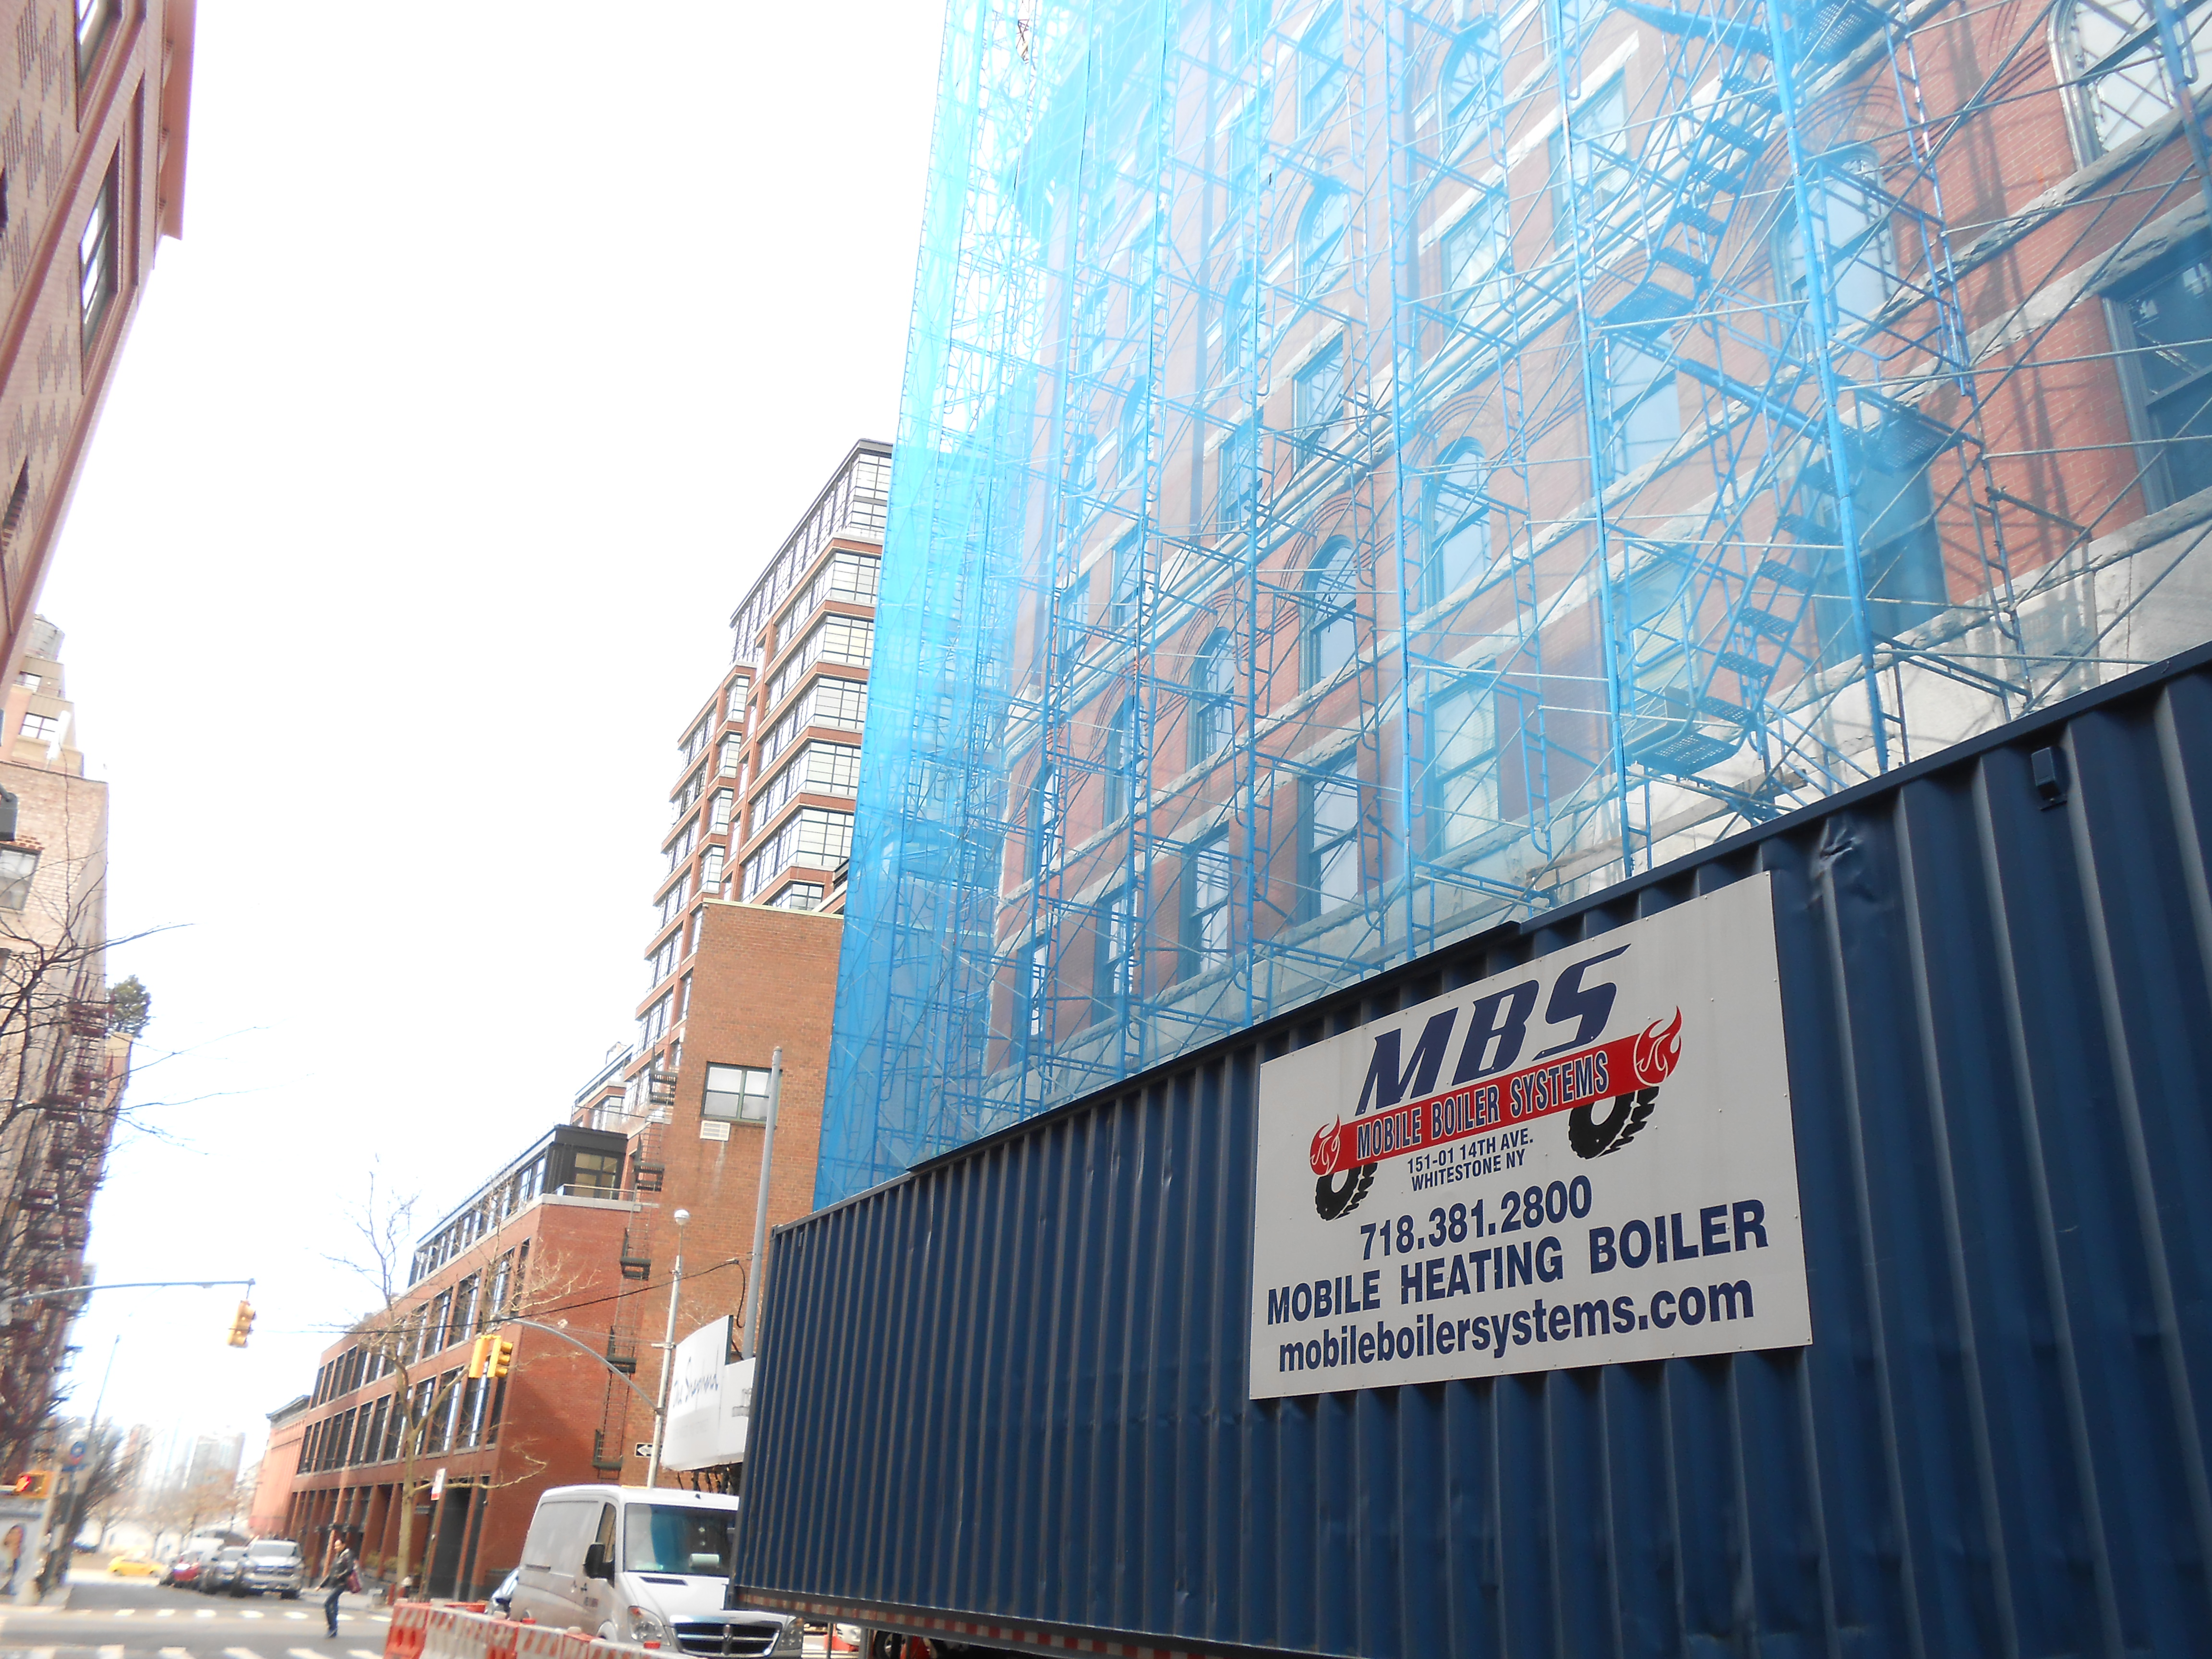 Reliable boiler rental NYC metro